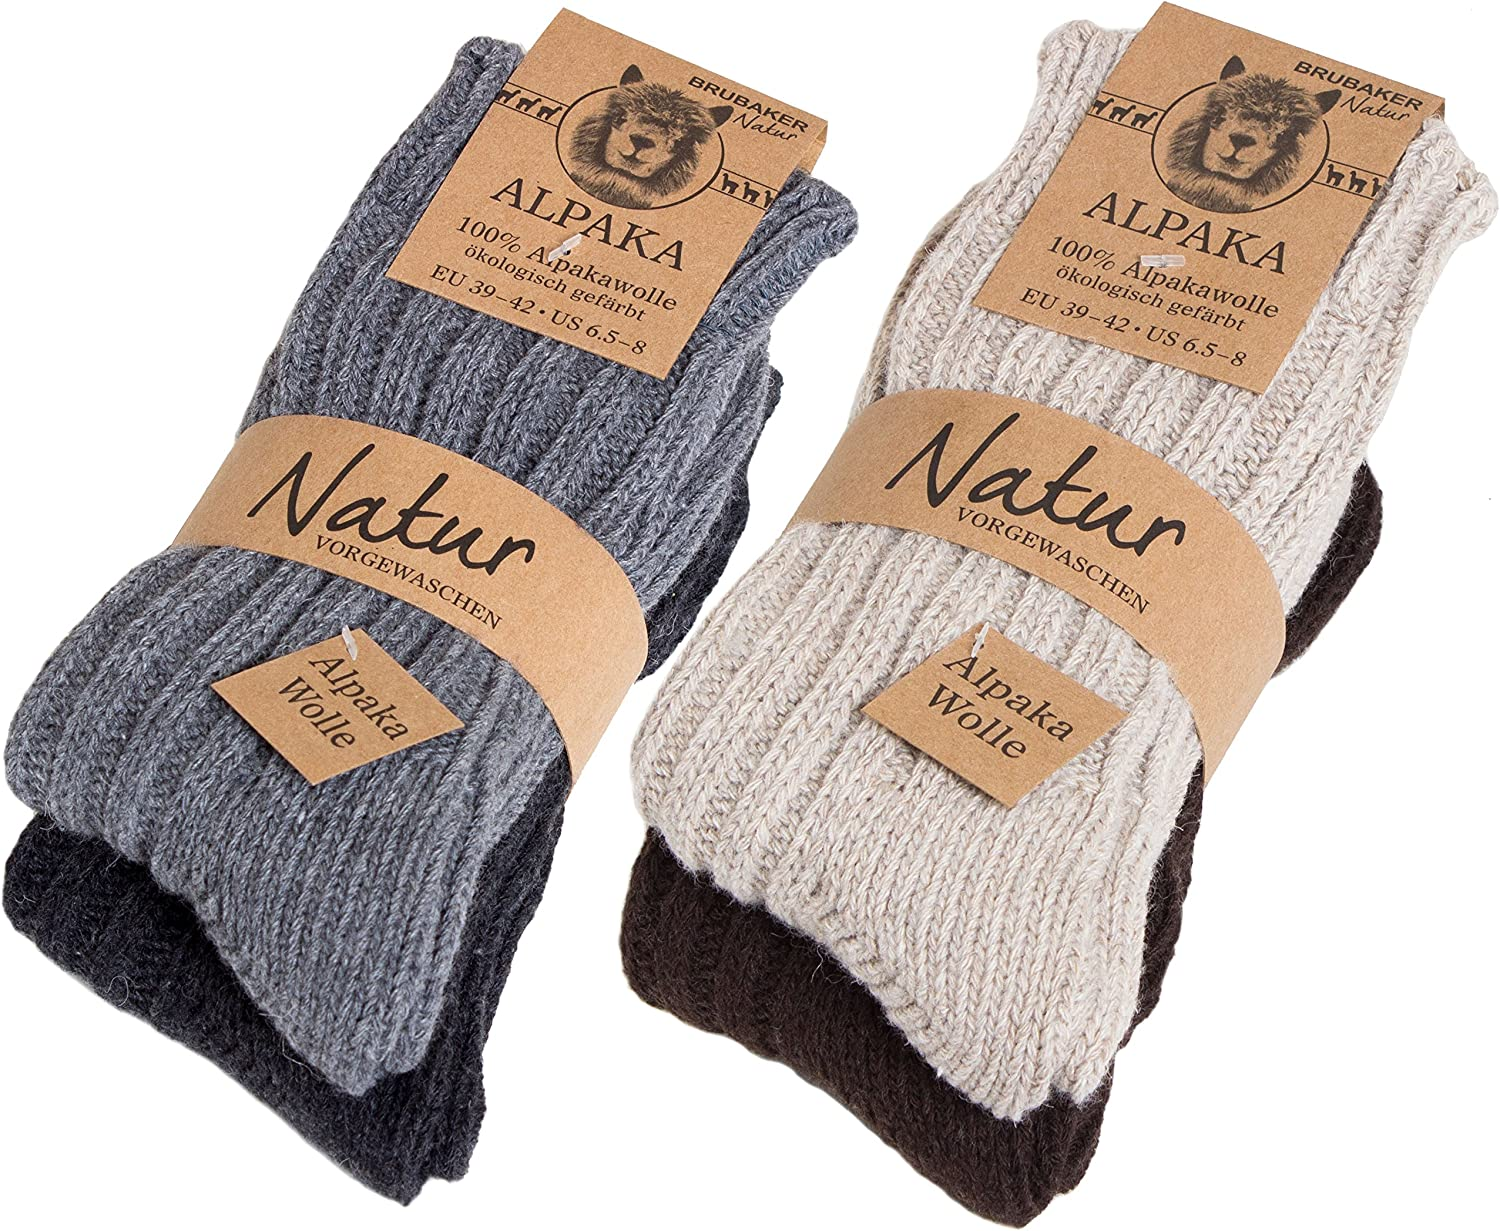 BRUBAKER Thick Alpaca Winter Socks For Men Or Women 100% Alpaca - 4 Pairs: Clothing